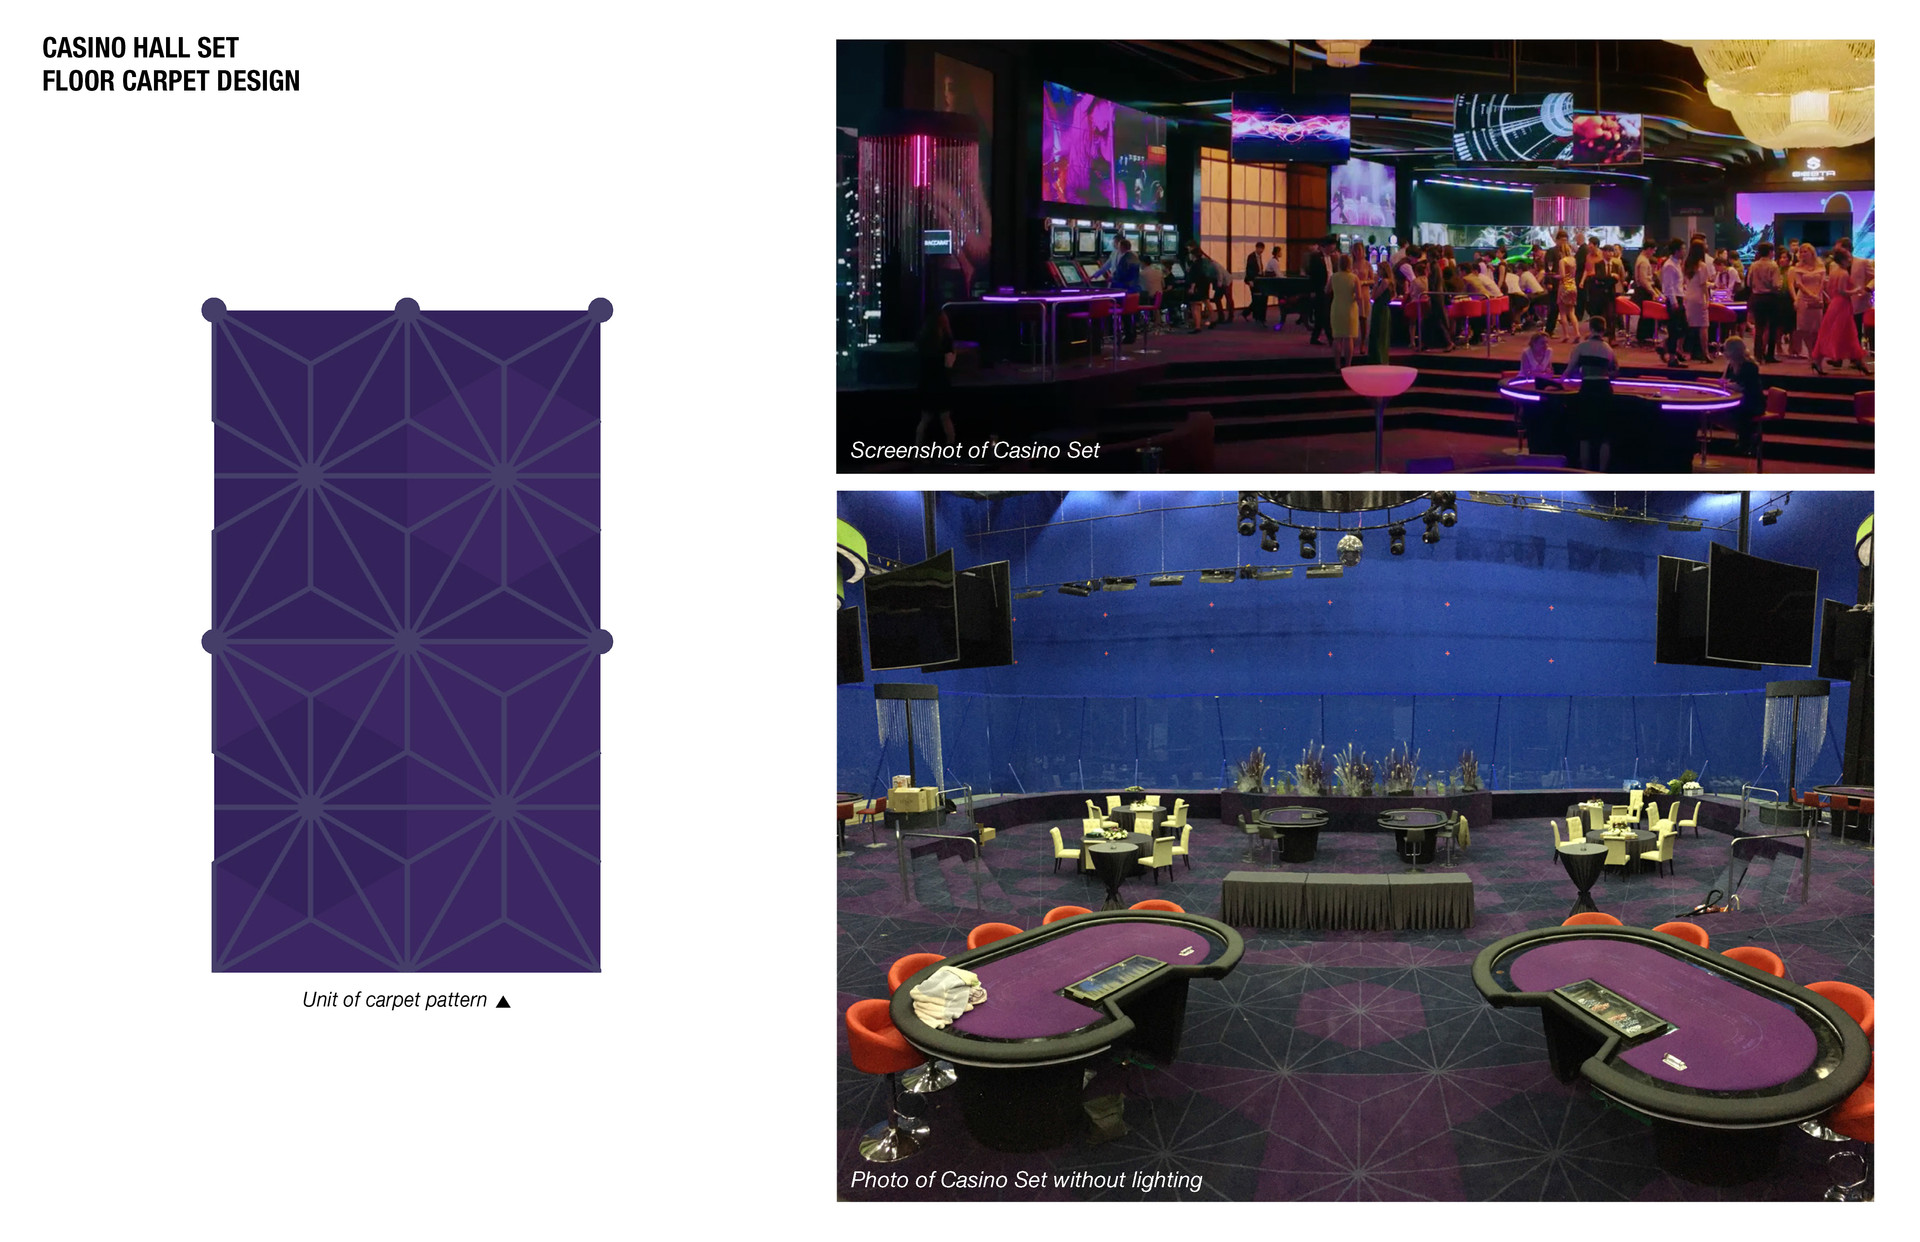 Carpet Design for Casino Set